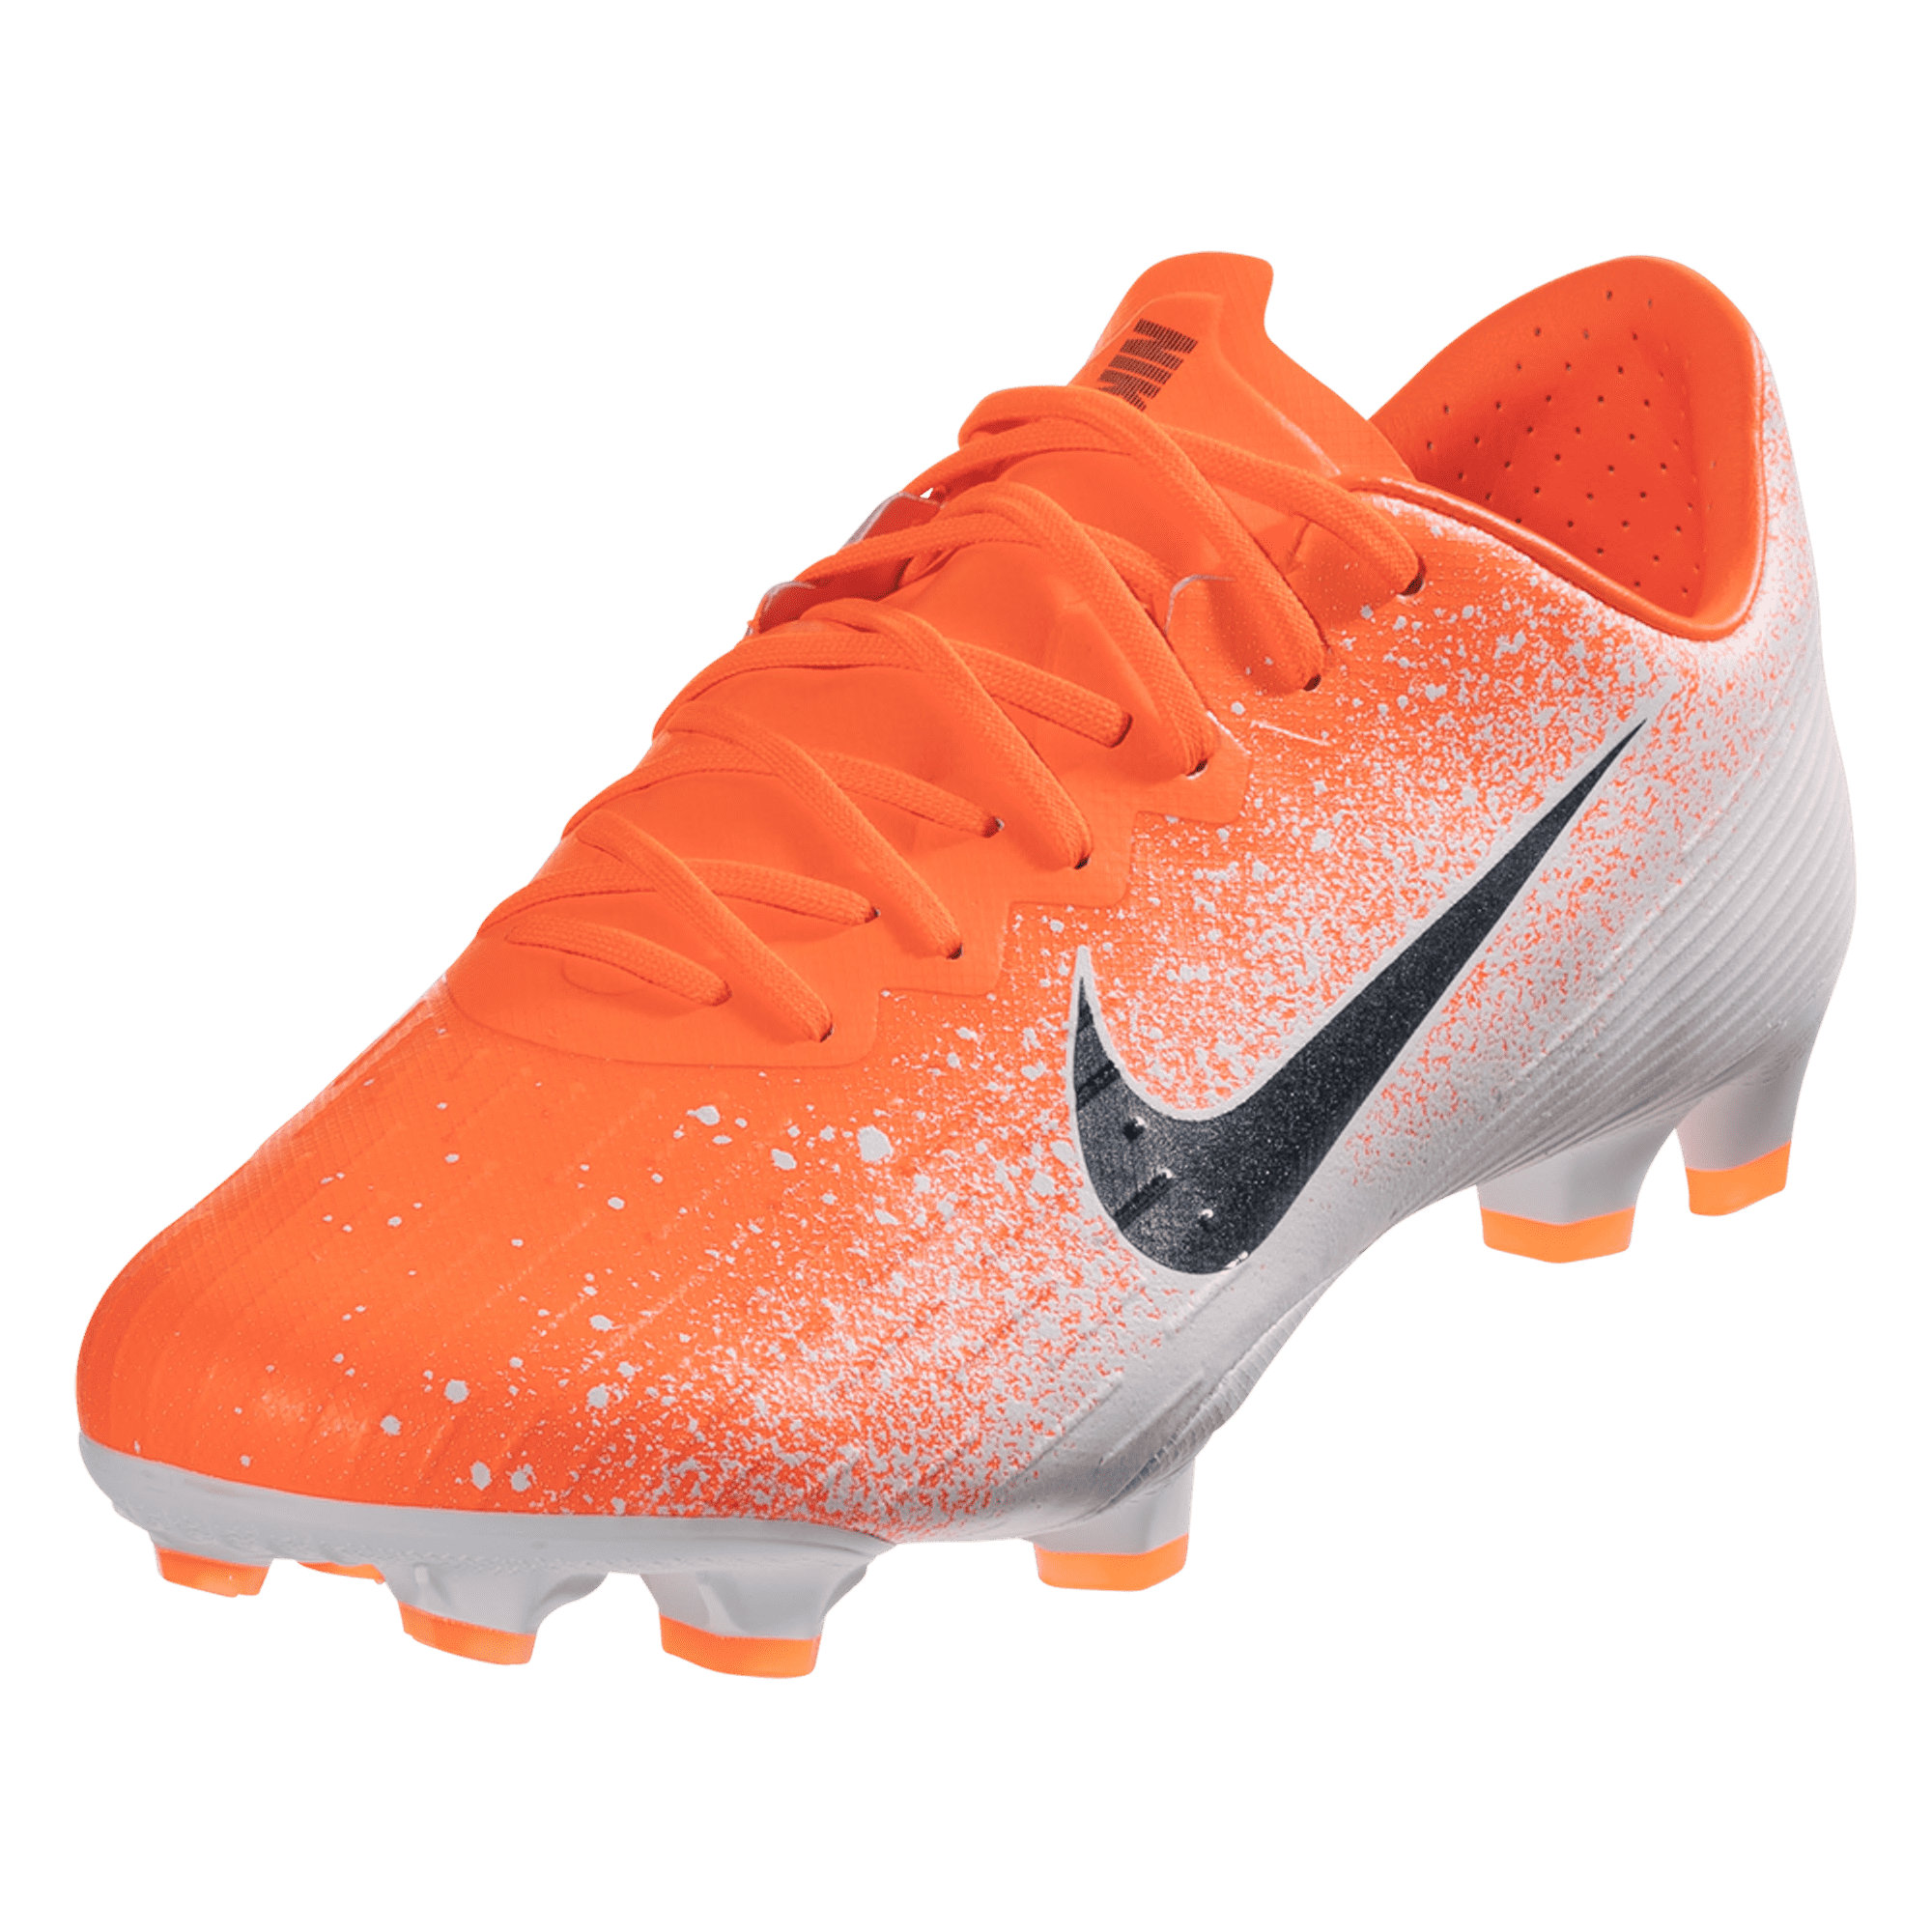 b6b1968df Nike Mercurial Vapor XII Pro FG Soccer Cleat – Hyper Crimson / Black / White